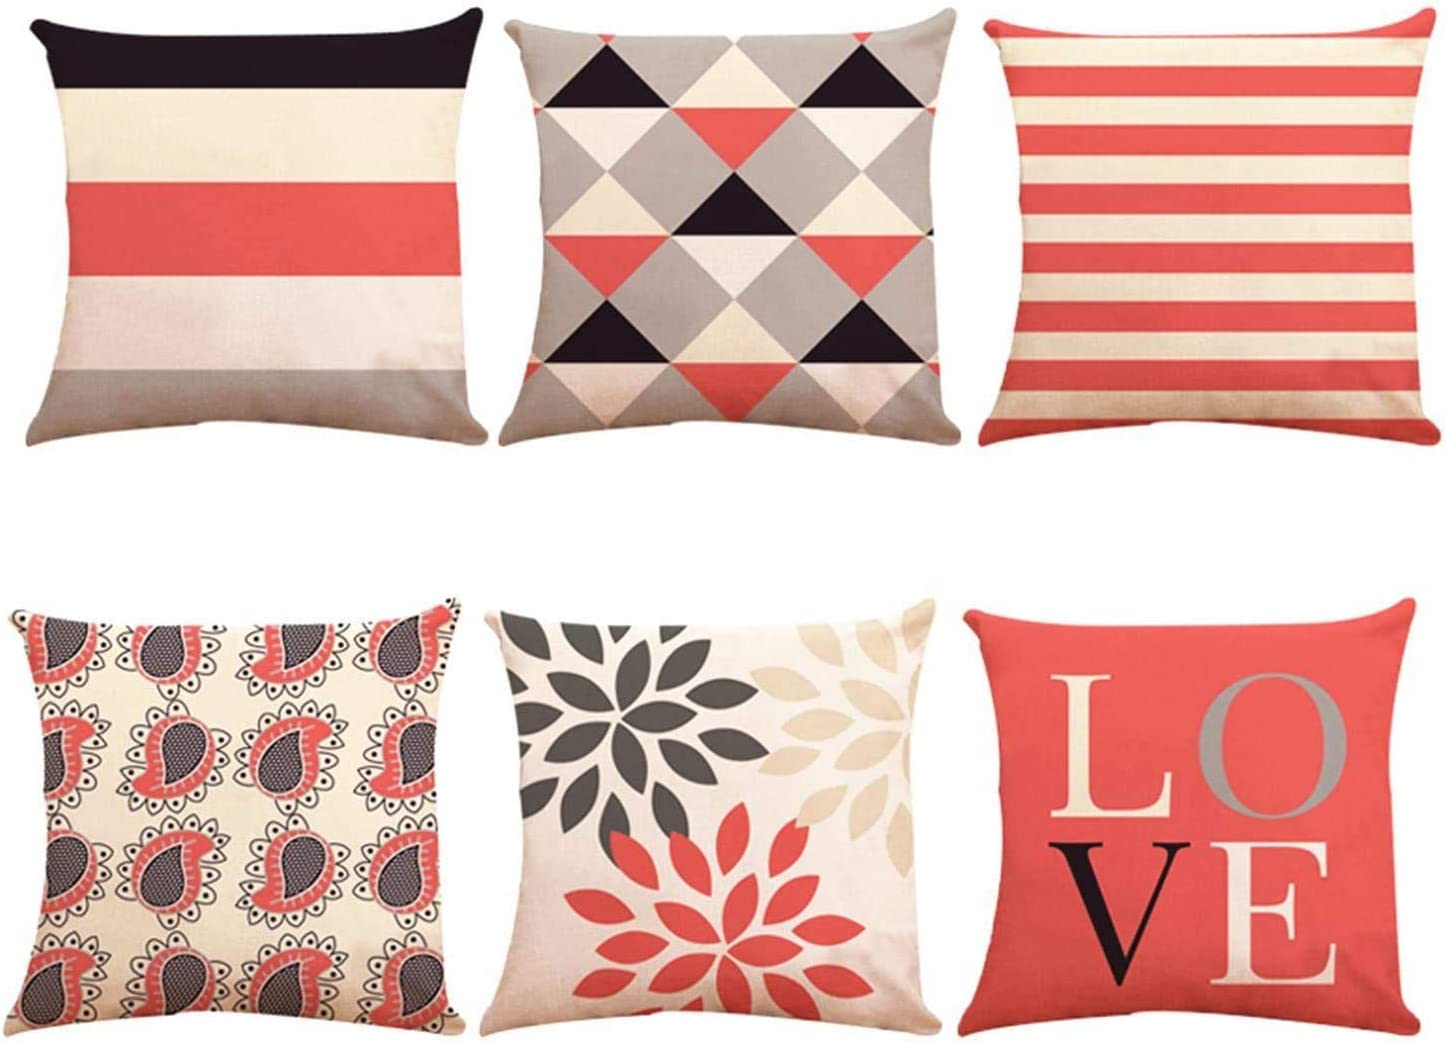 ZUEXT Coral Valentines' Day Love Theme Geometric Throw Pillow Covers 16x16 Inch Set of 6, Cotton Linen Indoor Outdoor Cushion Pillowcase for Car Sofa Home Decor(Coral Navy New Living Seris)